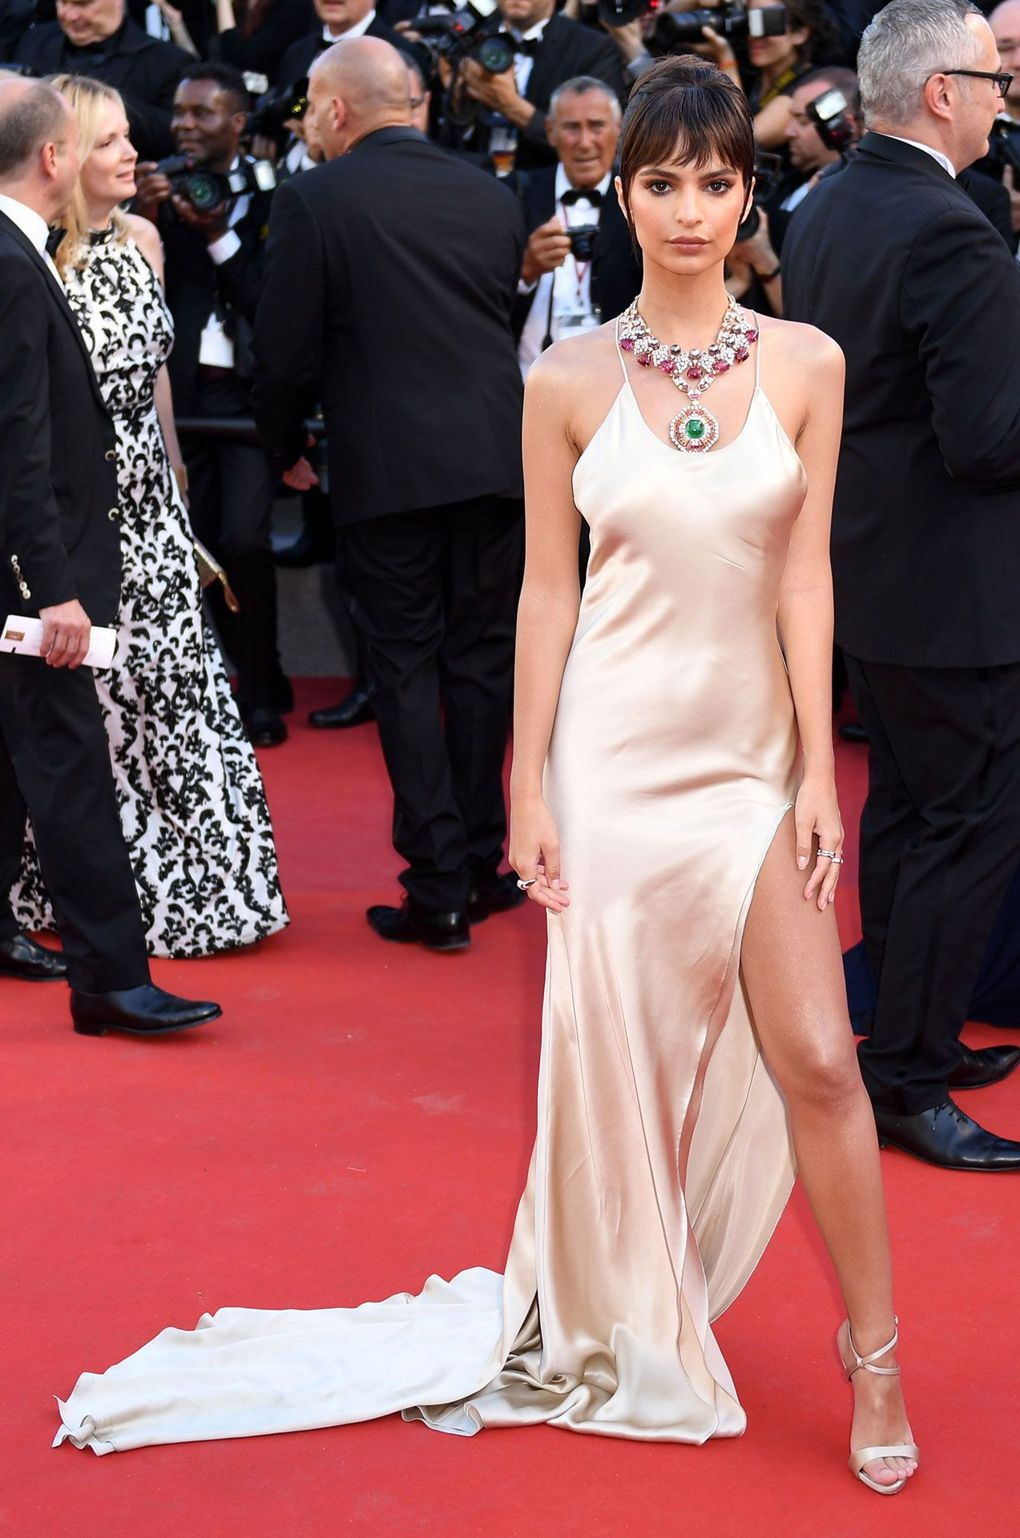 Cannes Film Festival 2017 The Most Beautiful Red Carpet Gowns ➤ To see more news about fashion visit us at www.fashiondesignweeks.com #fashiontrends #fashiontips #luxurybrand #elisabethmoments @fashiondesignweeks @elisabethmoments cannes film festival 2017 Cannes Film Festival 2017: The Most Beautiful Red Carpet Gowns Cannes Film Festival 2017 The Most Beautiful Red Carpet Gowns 17